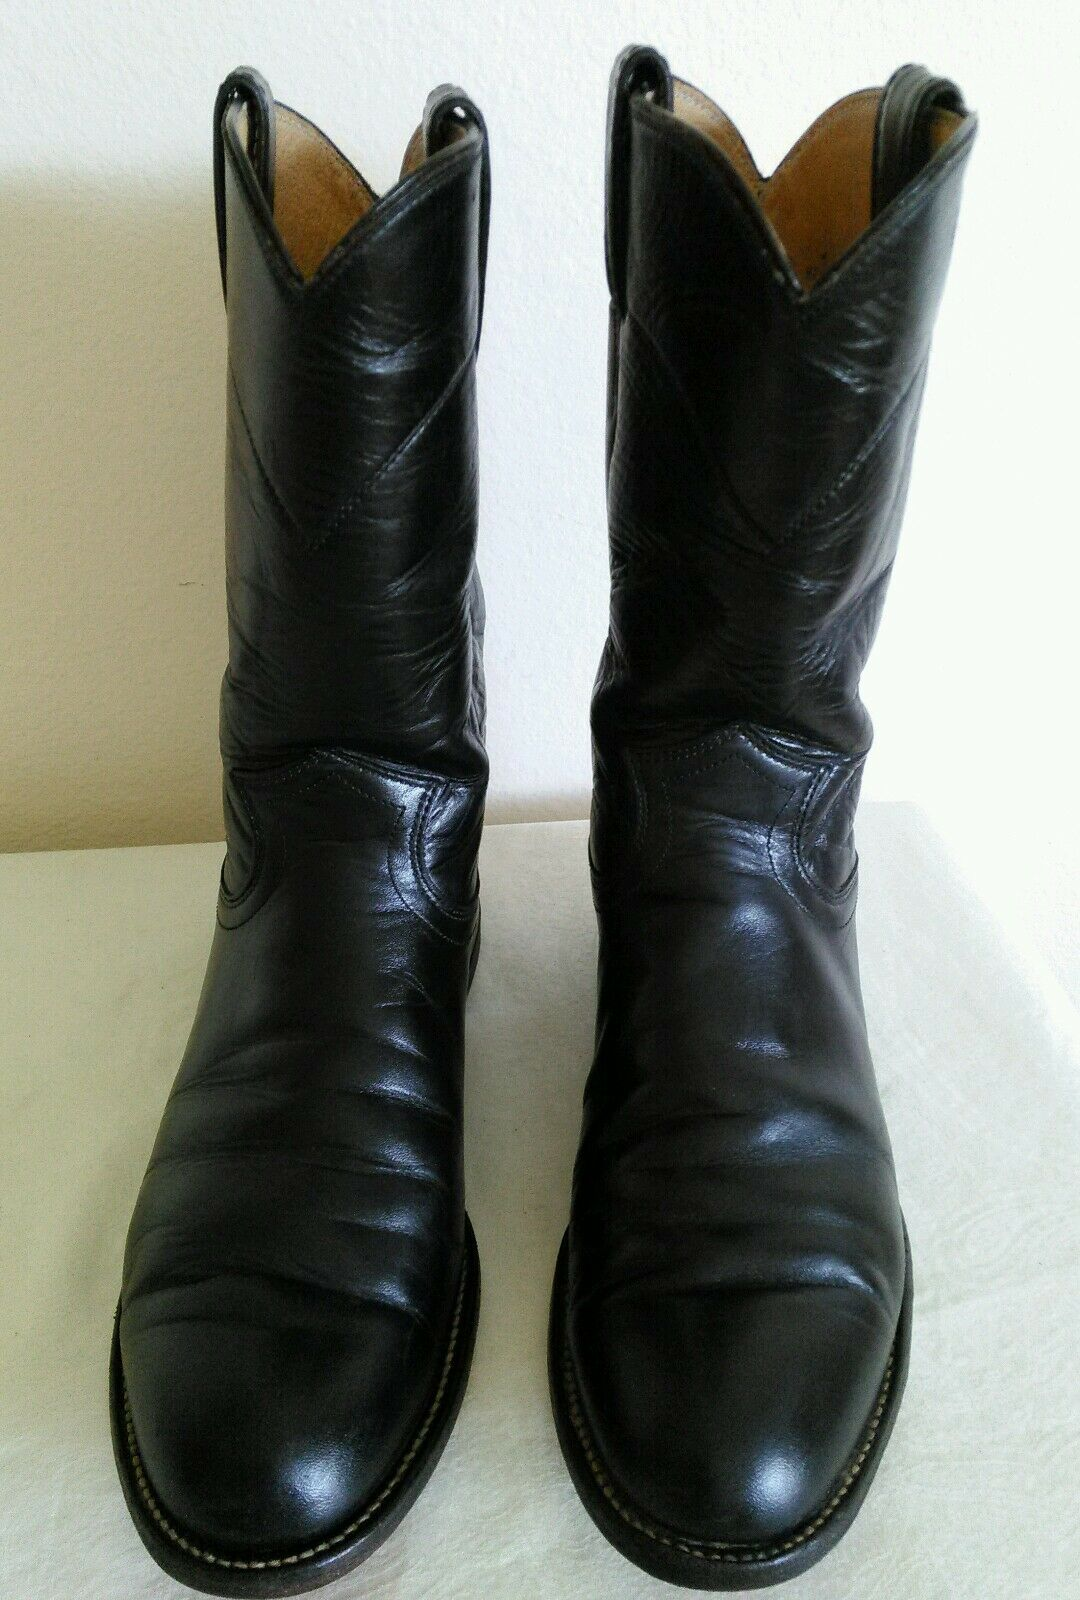 JUSTIN Women's Black leather Western Roper Riding boots Size 7 B Made in USA